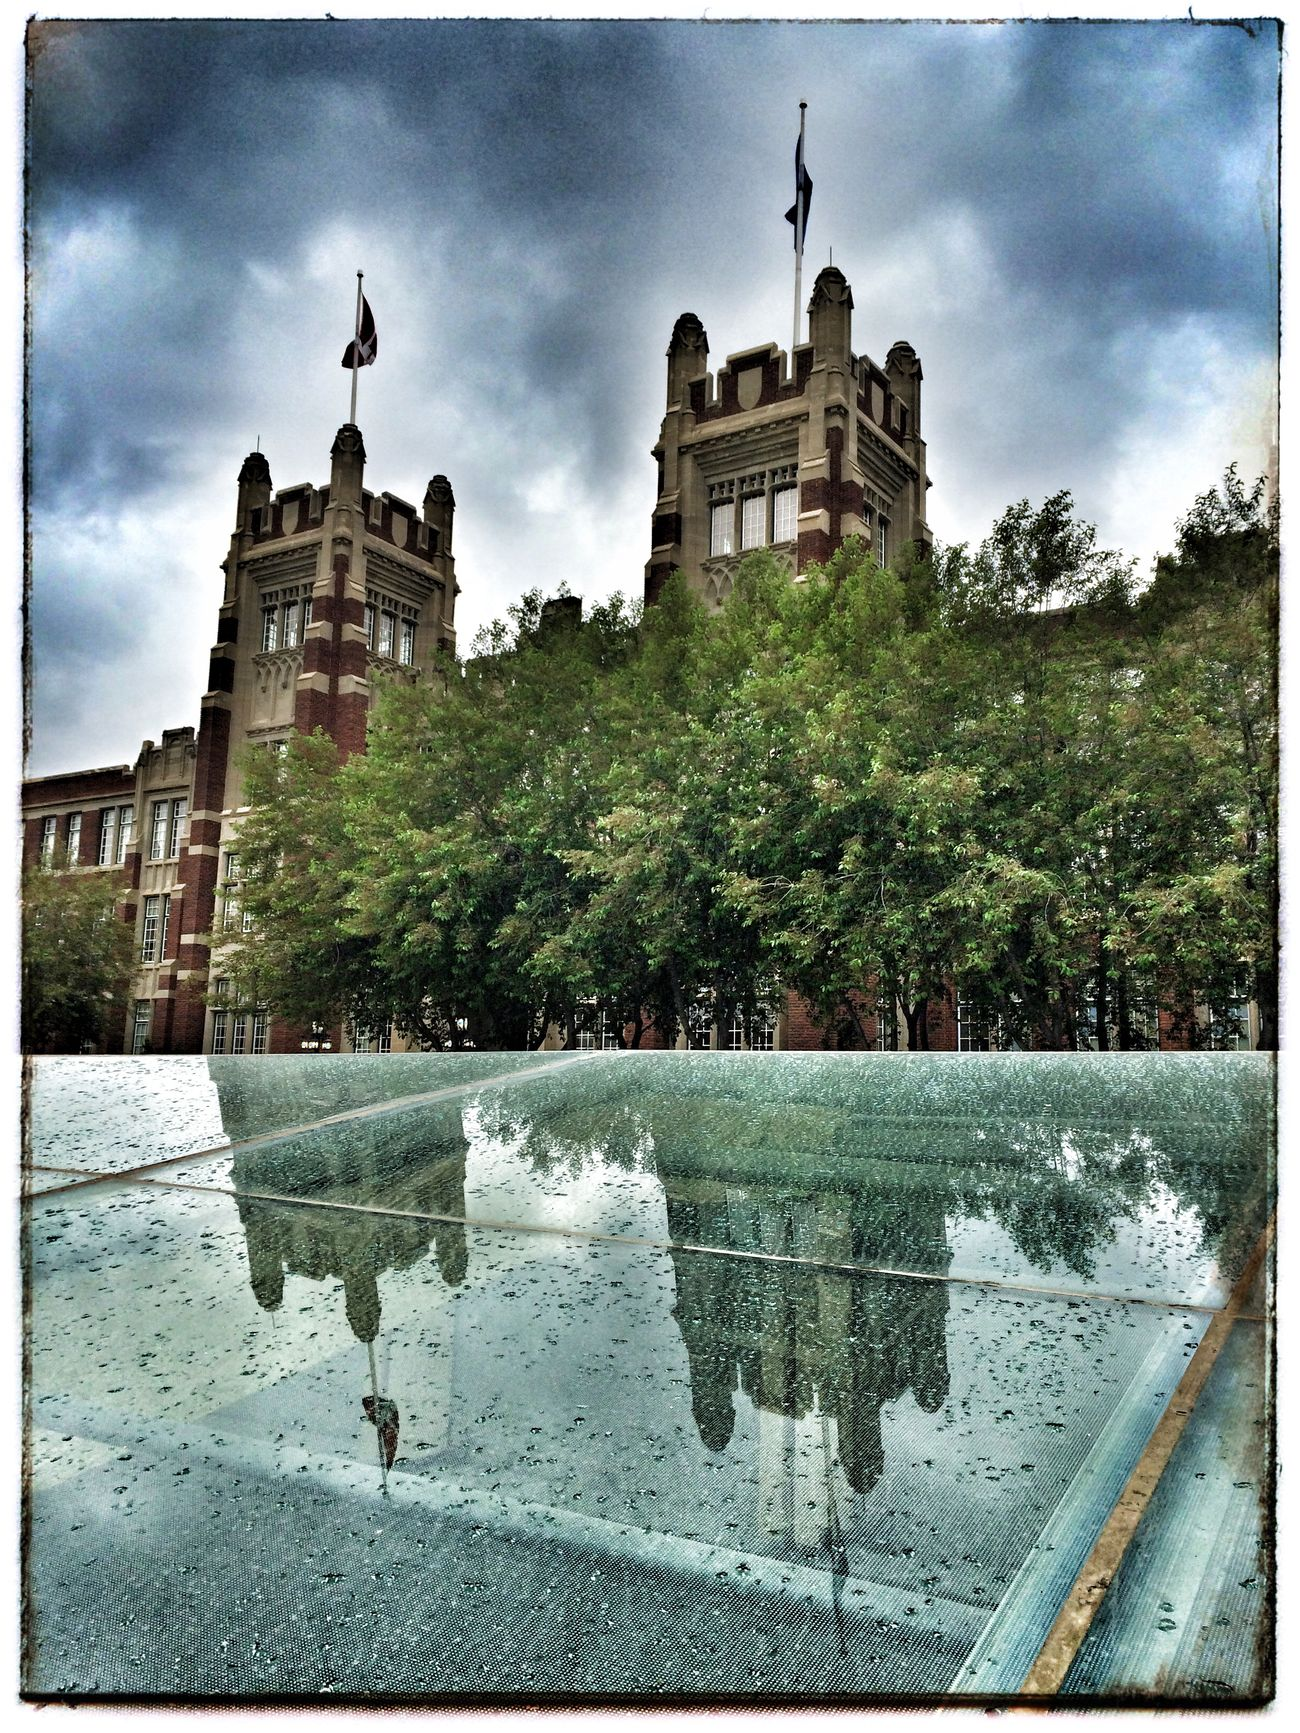 Rainy night on campus 1. Photography Iphone 5 Photo Of The Day Project 365 Rain Reflection Architecture